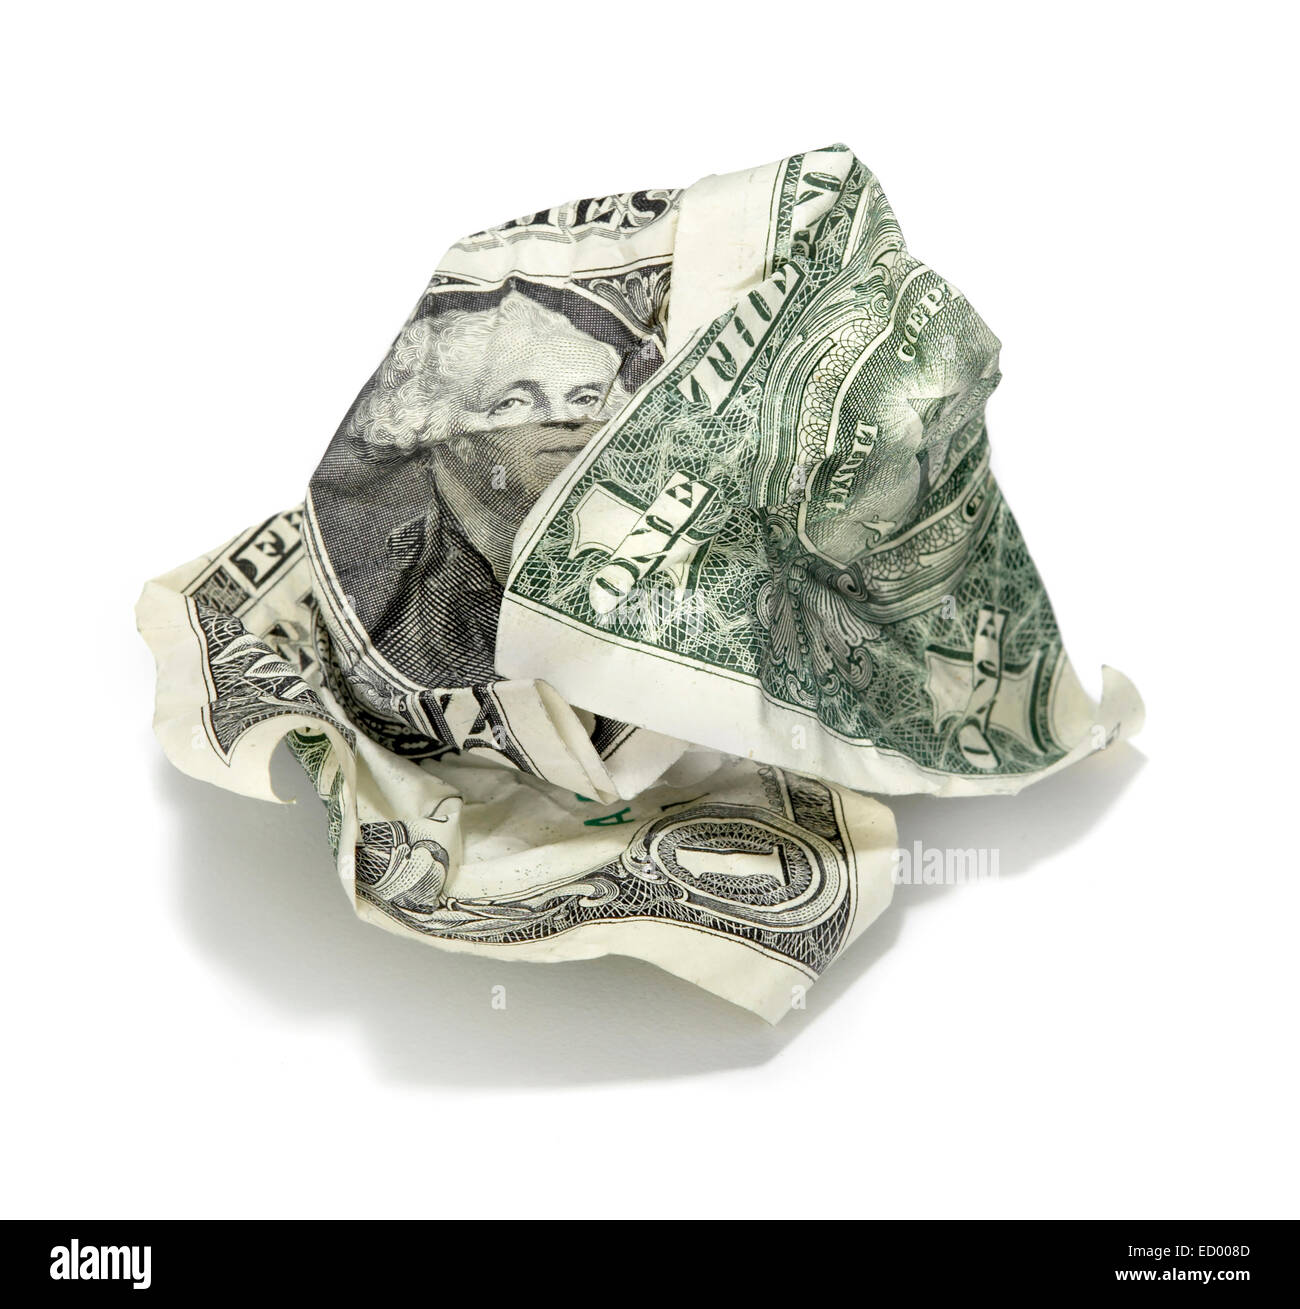 wadded dollar bill photographed on a white background - Stock Image